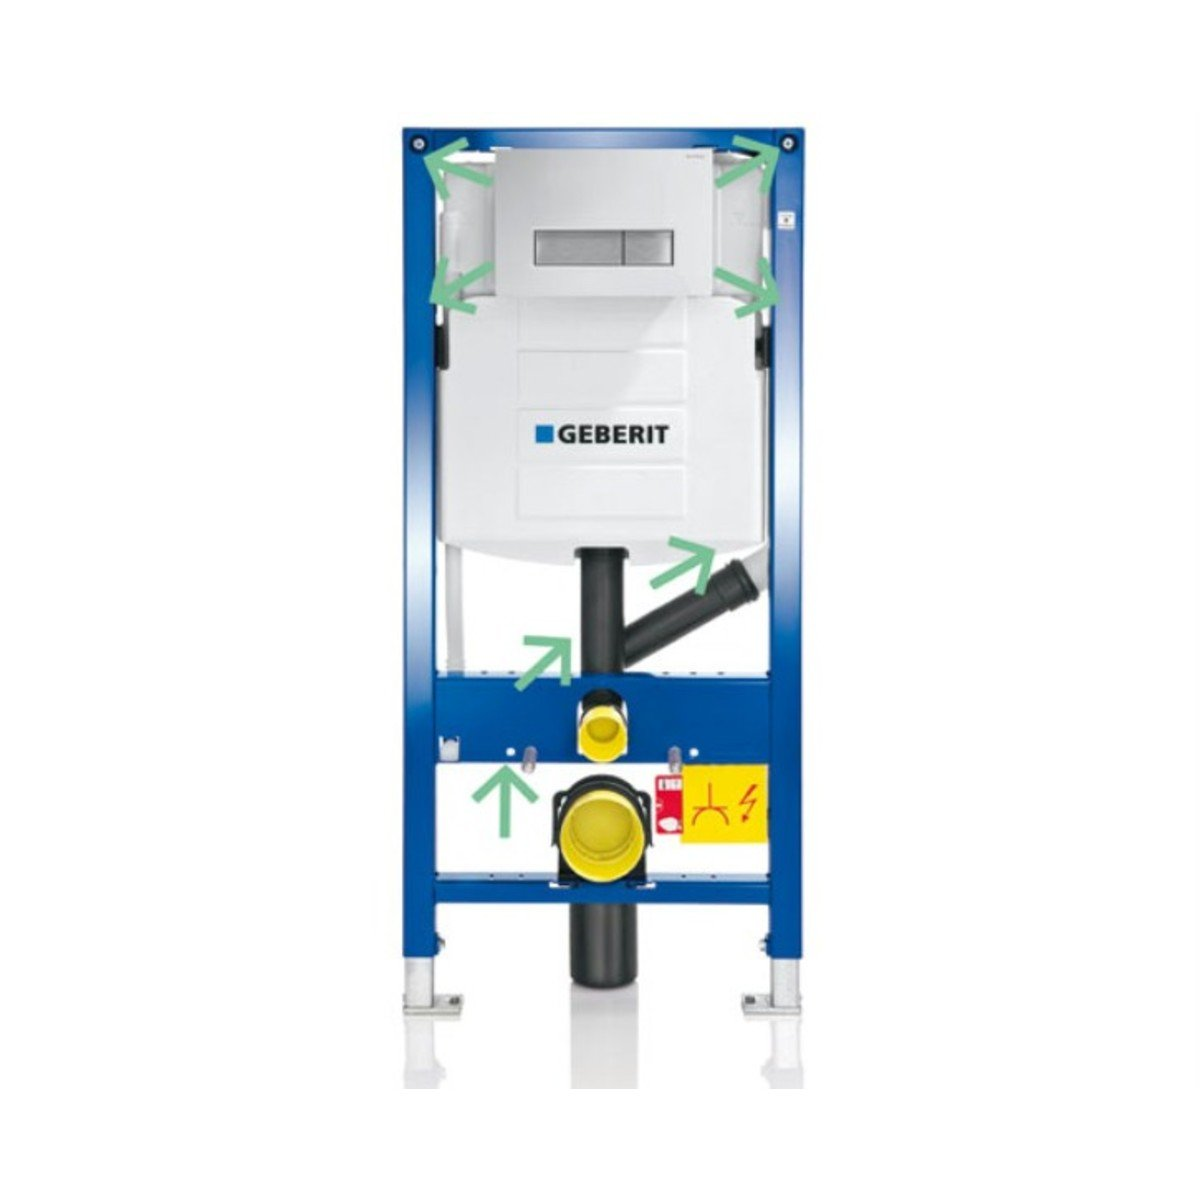 Geberit duofresh wc element met geurafzuiging en filtering for Geberit products